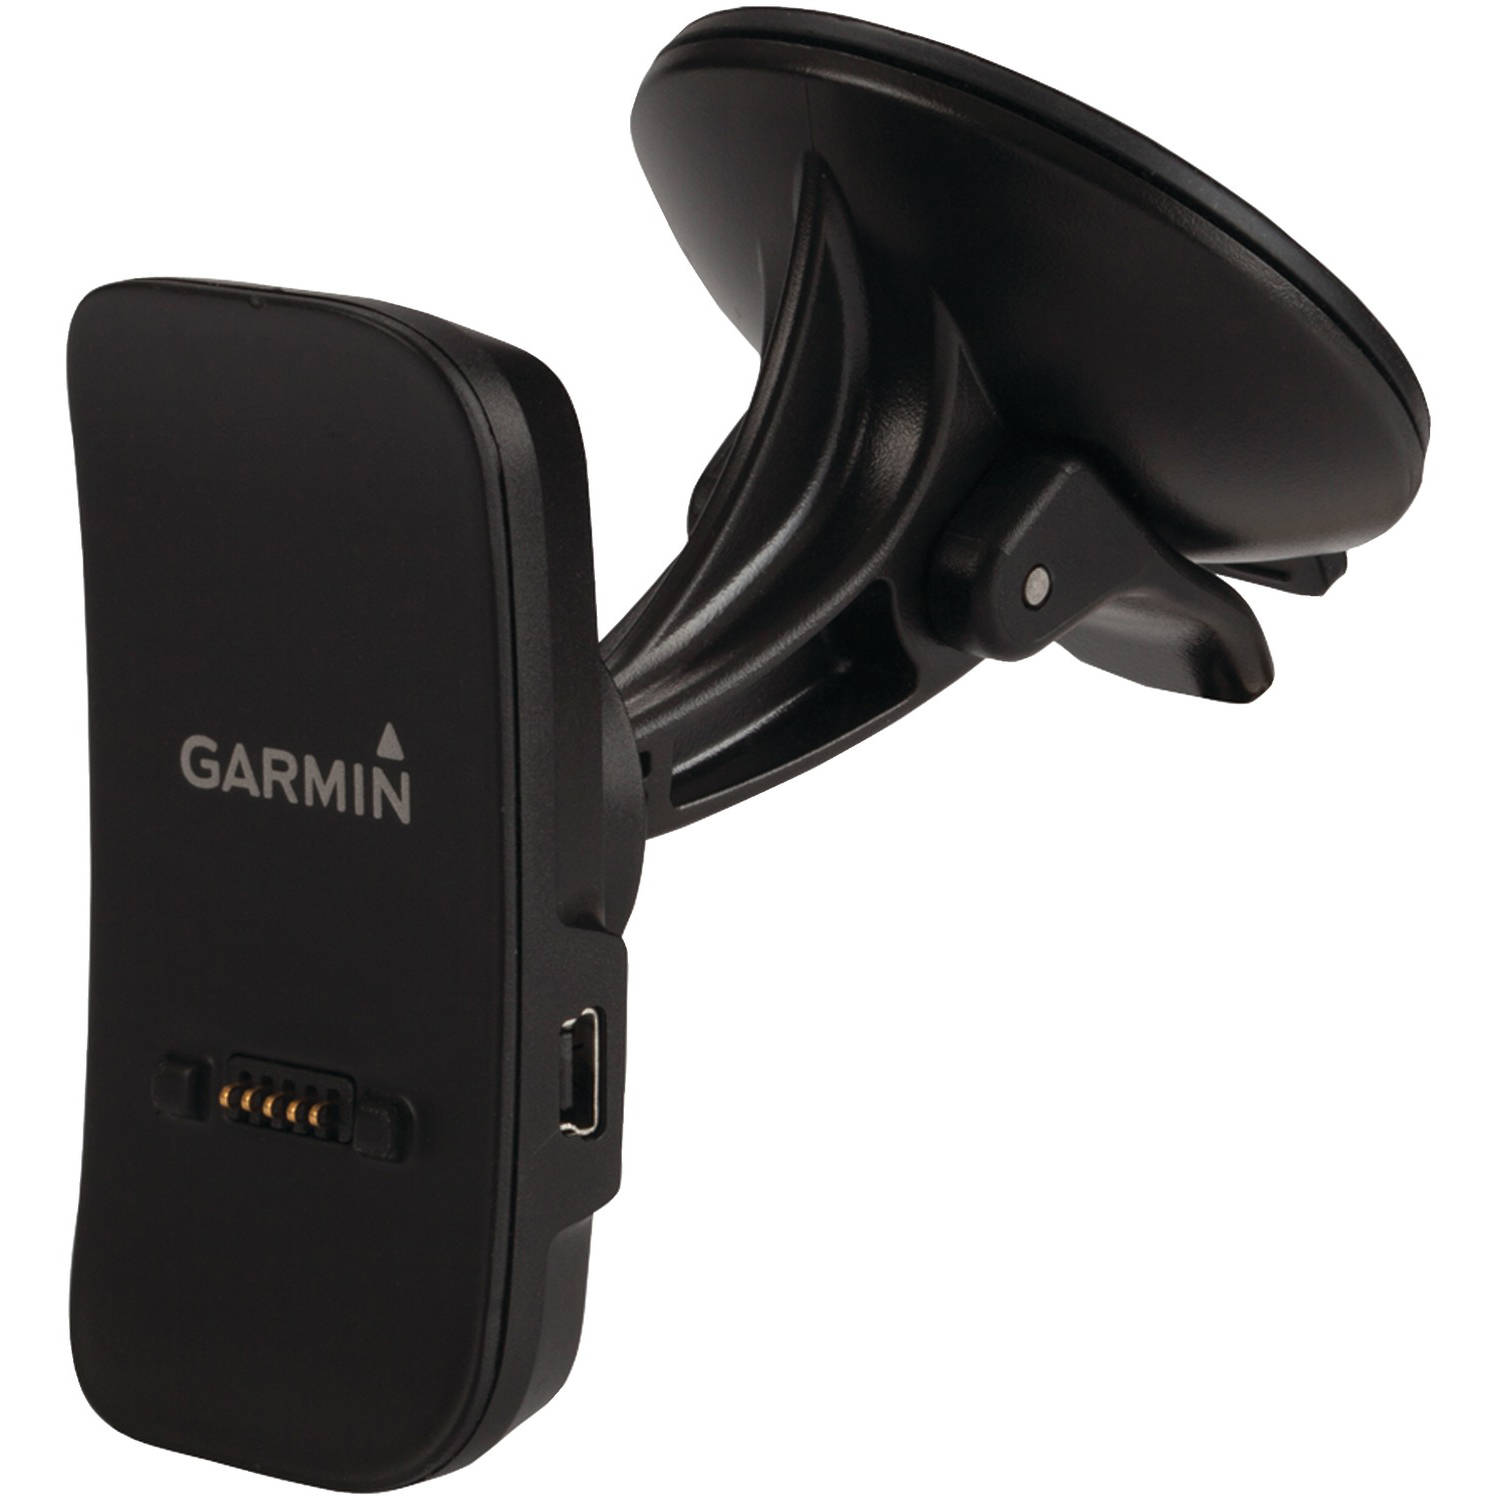 Garmin 010-12394-00 DriveLuxe Vehicle Suction-Cup Mount